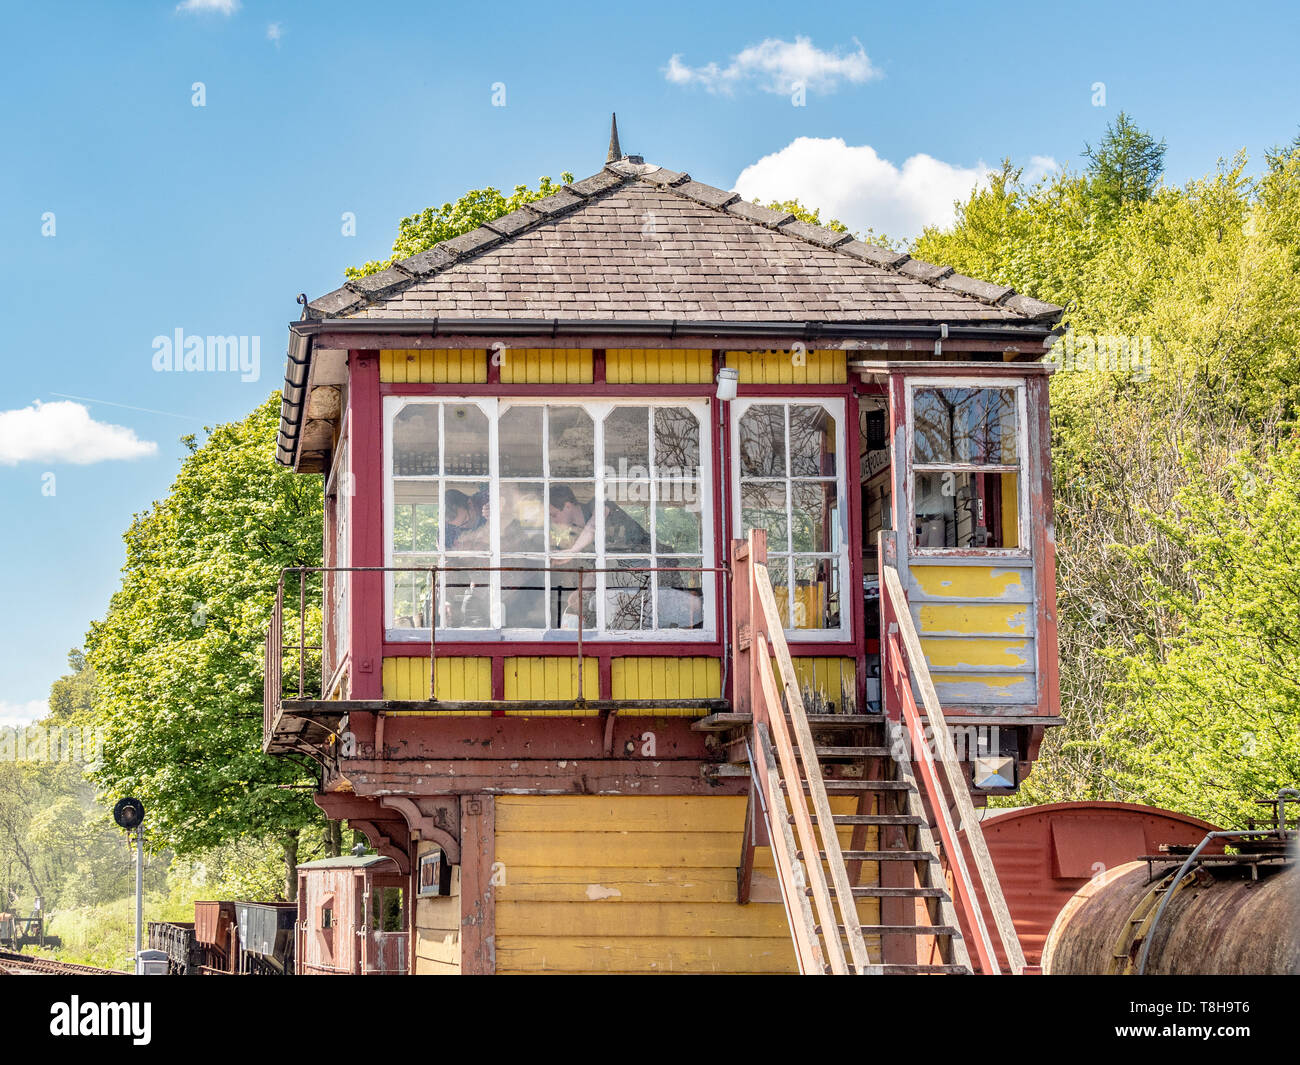 Signal box, Bolton and Embsay steam railway. Bolton Station, Yorkshire Dales, UK. - Stock Image